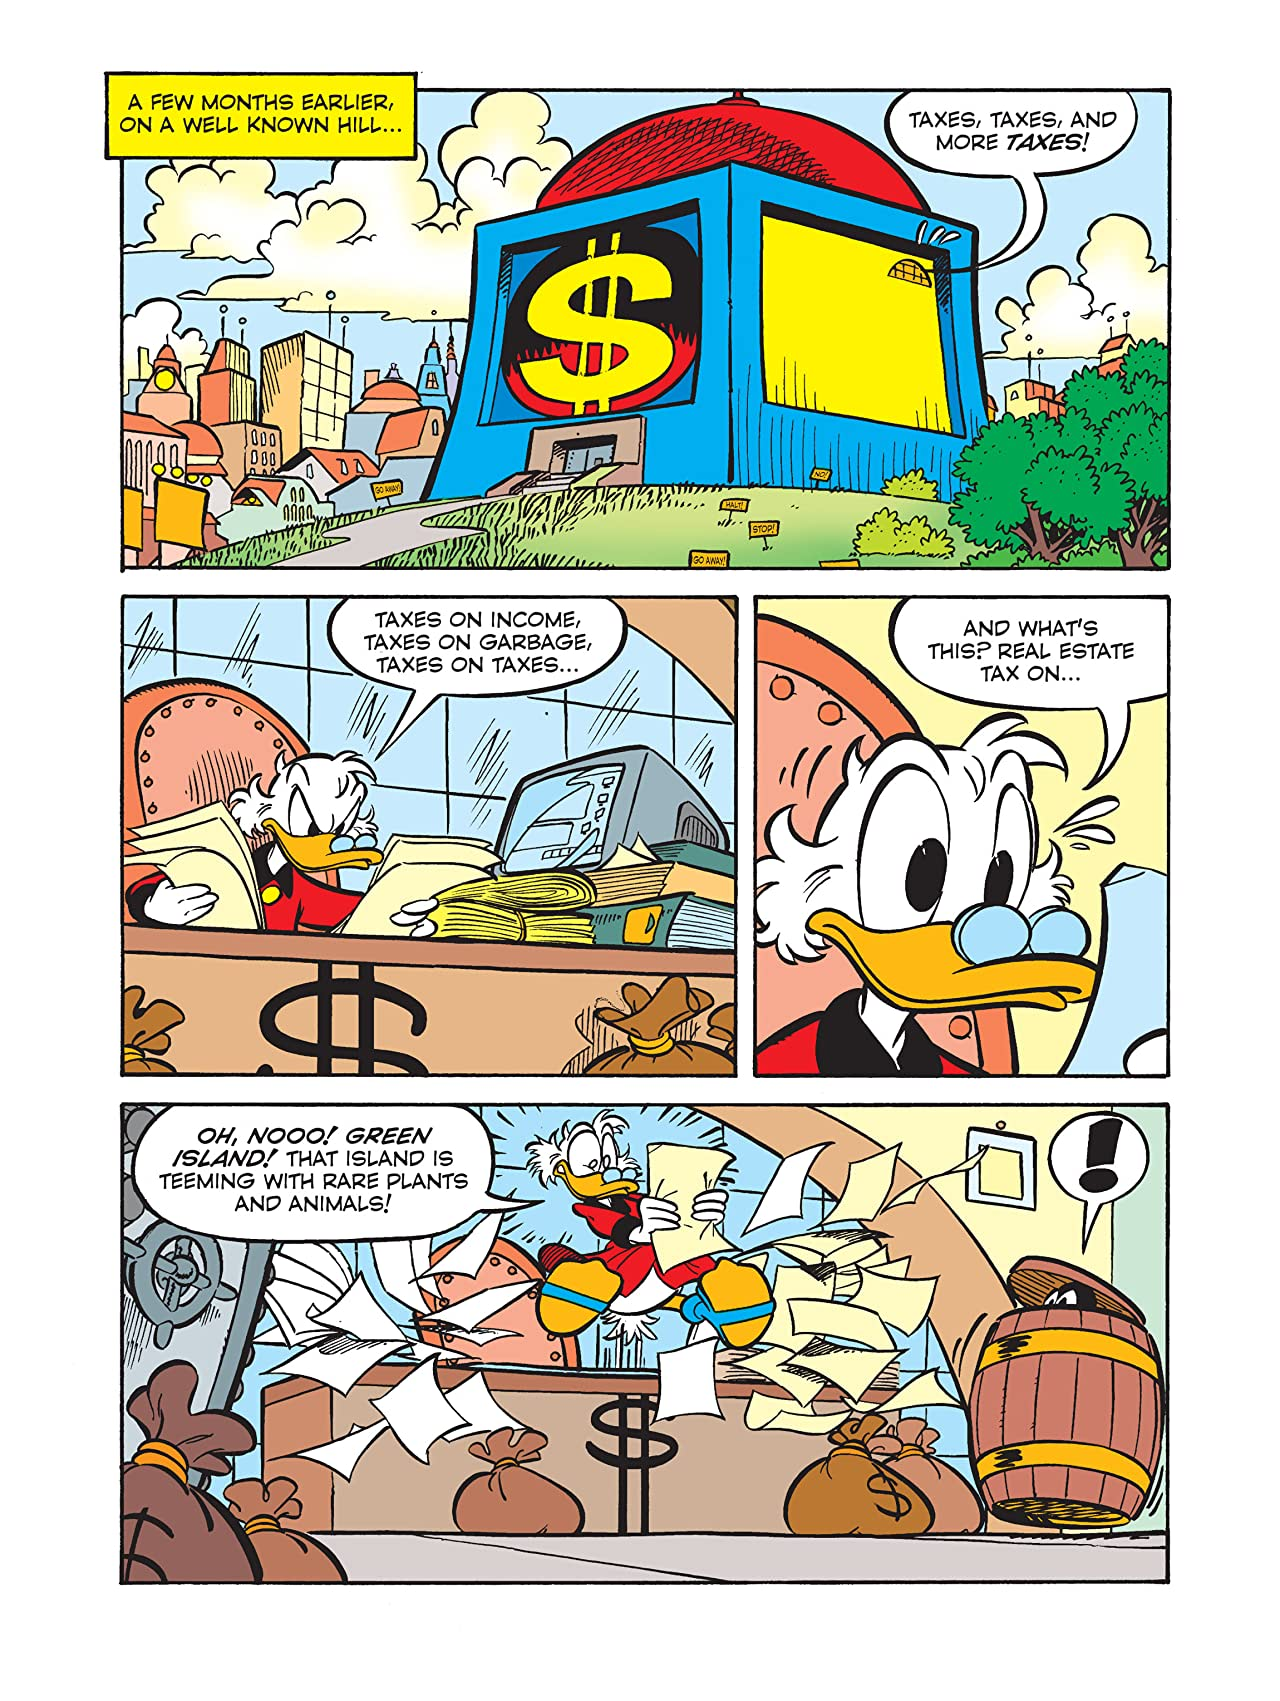 Scrooge McDuck and the Exclusive Oasis